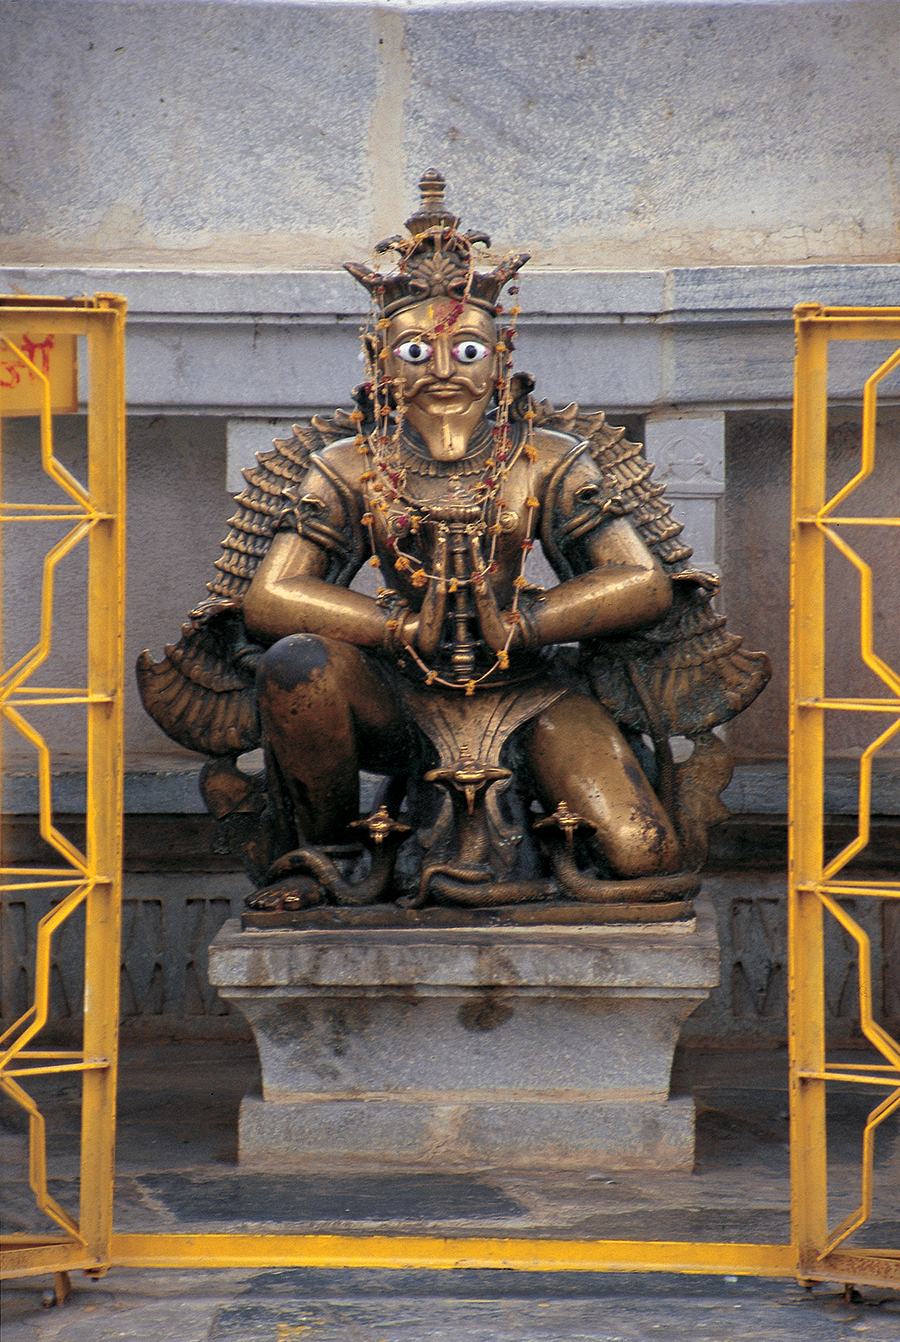 Garuda is famed for his supernatural powers, invulnerability (posseses mystic power against the effects of poison), and creative energy. Photo:Rajasthan, India